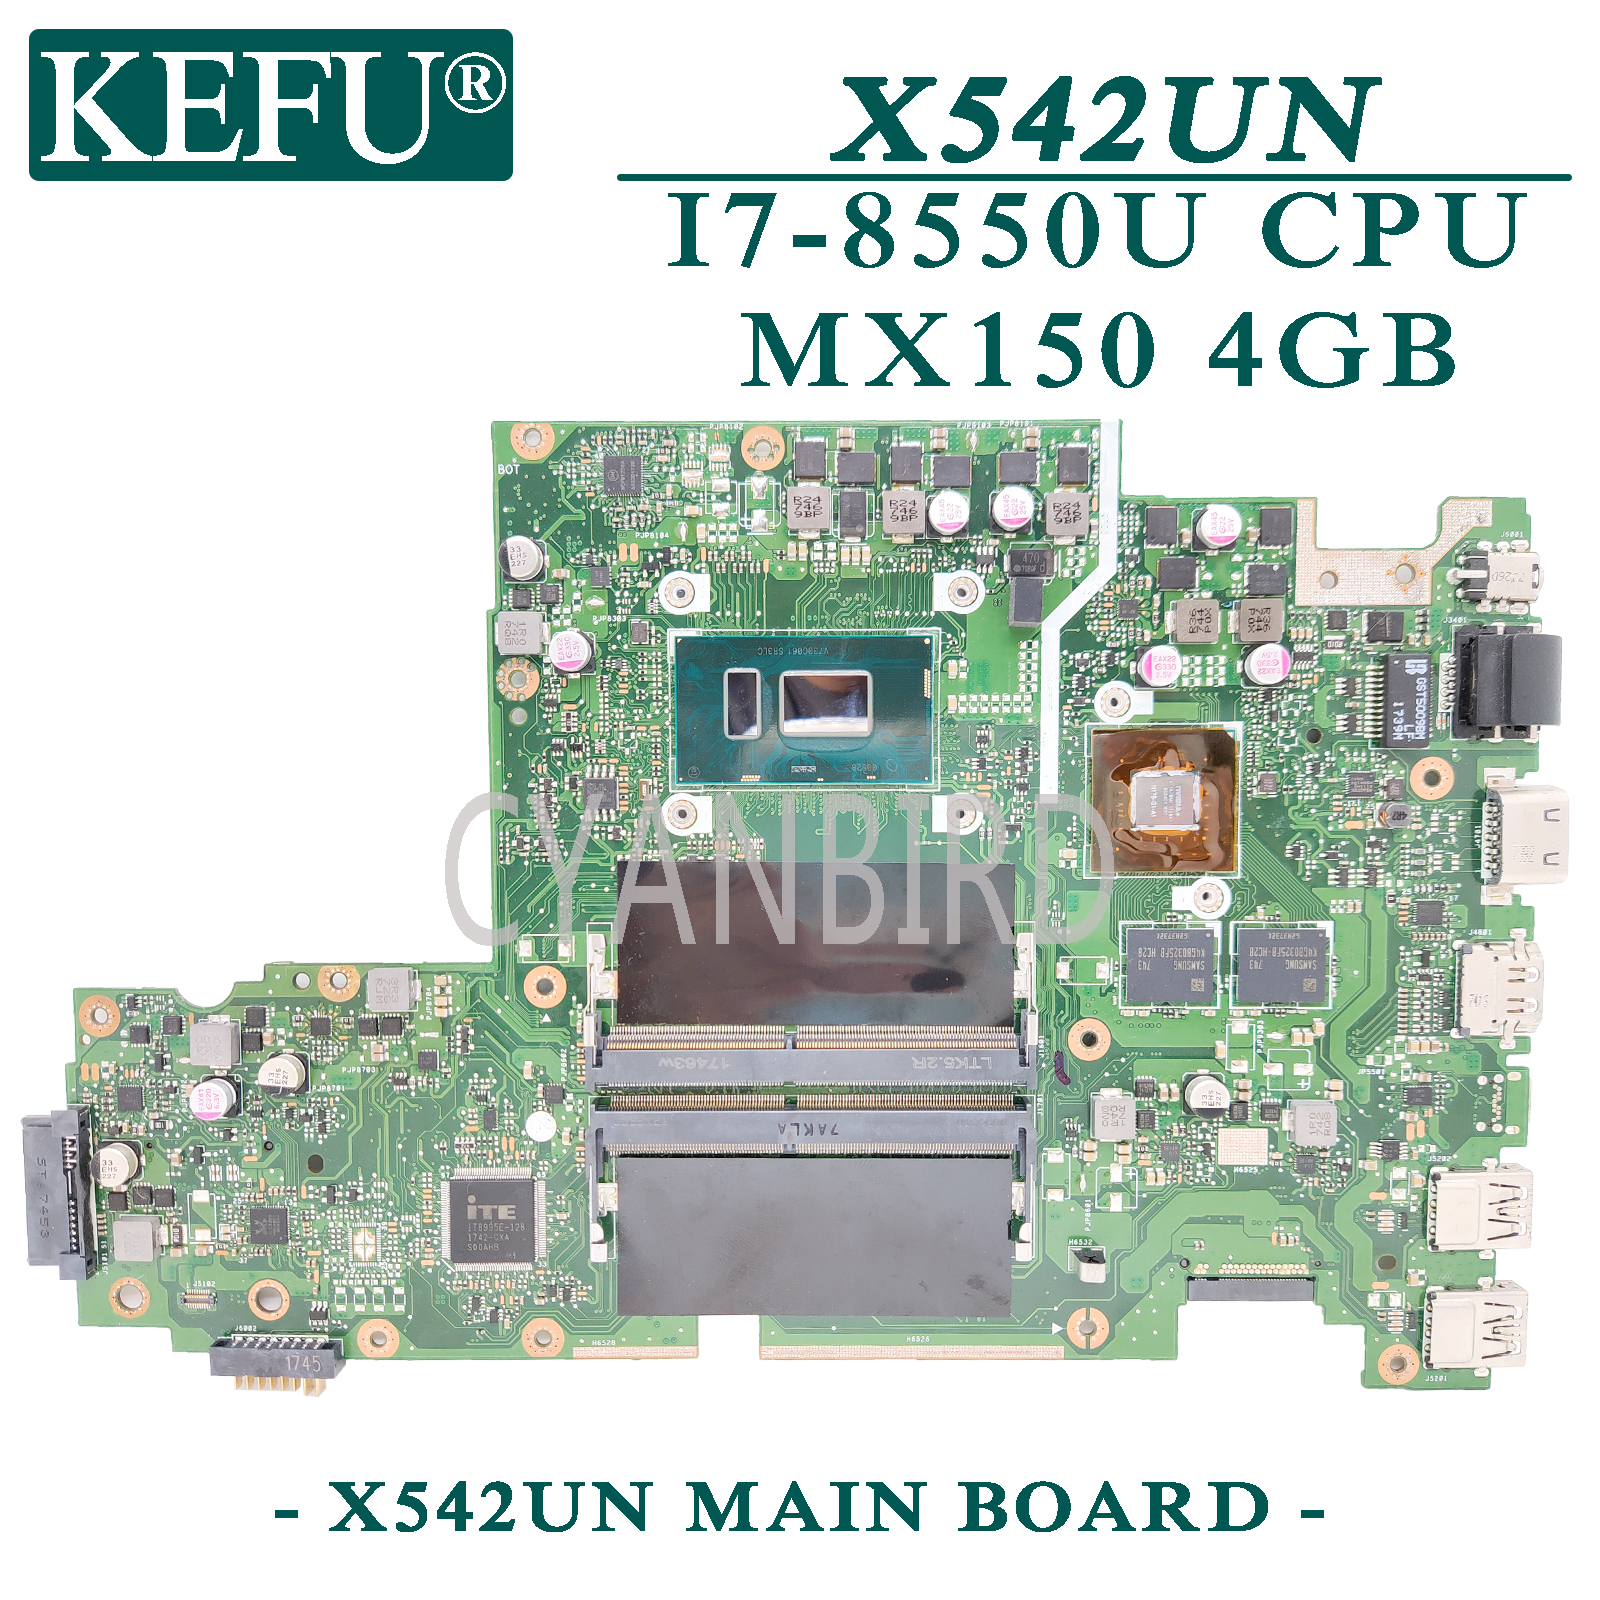 KEFU X542UN original mainboard for ASUS VivoBook X542UN X542UR X542UQ X542U FL8000U with I7-8550U <font><b>MX150</b></font>-4GB <font><b>Laptop</b></font> motherboard image